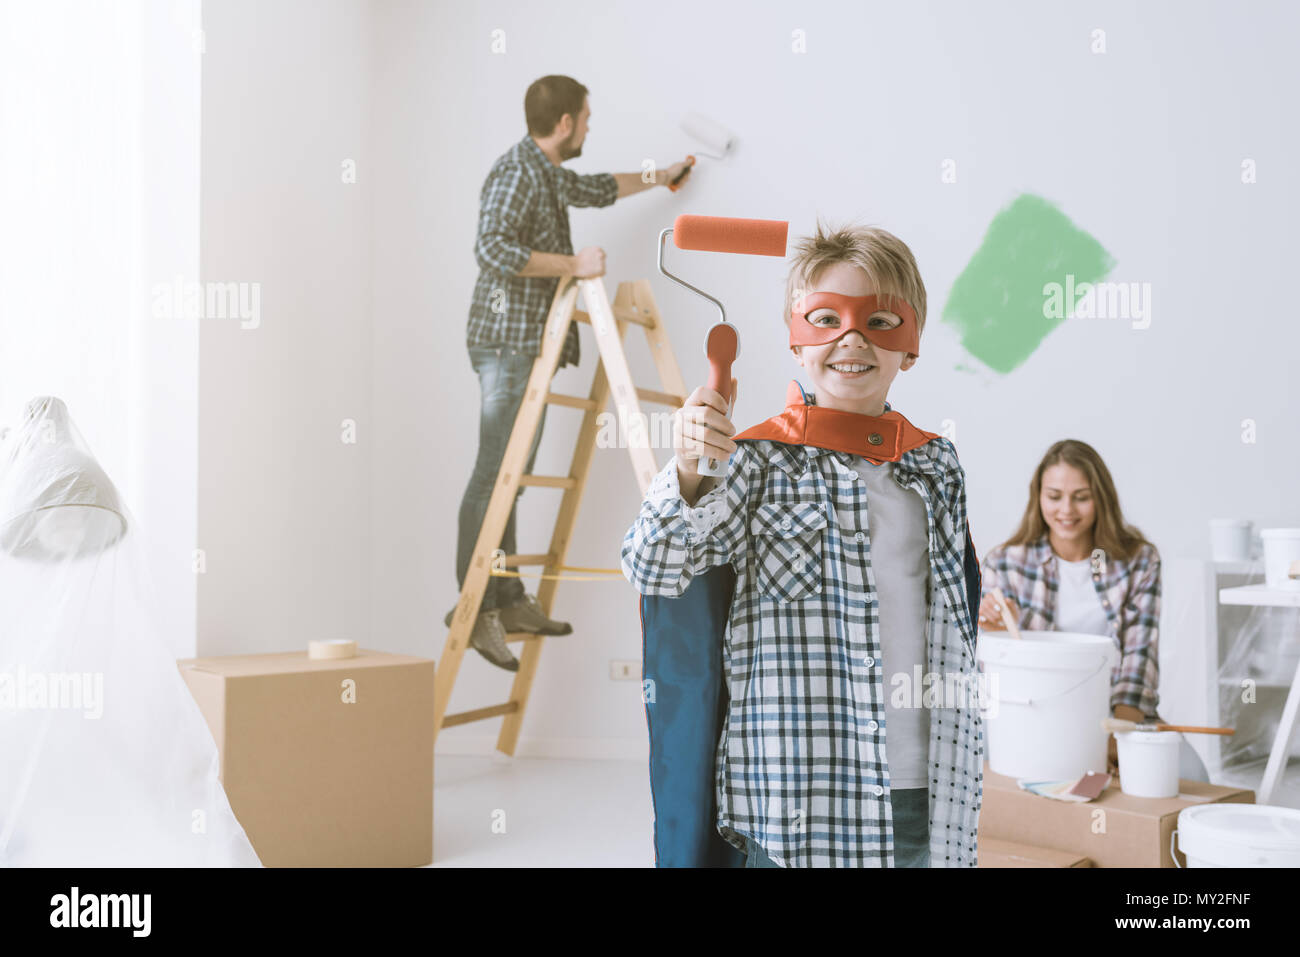 Family renovating their home and painting walls, the boy is wearing a superhero costume and holding a paint roller - Stock Image